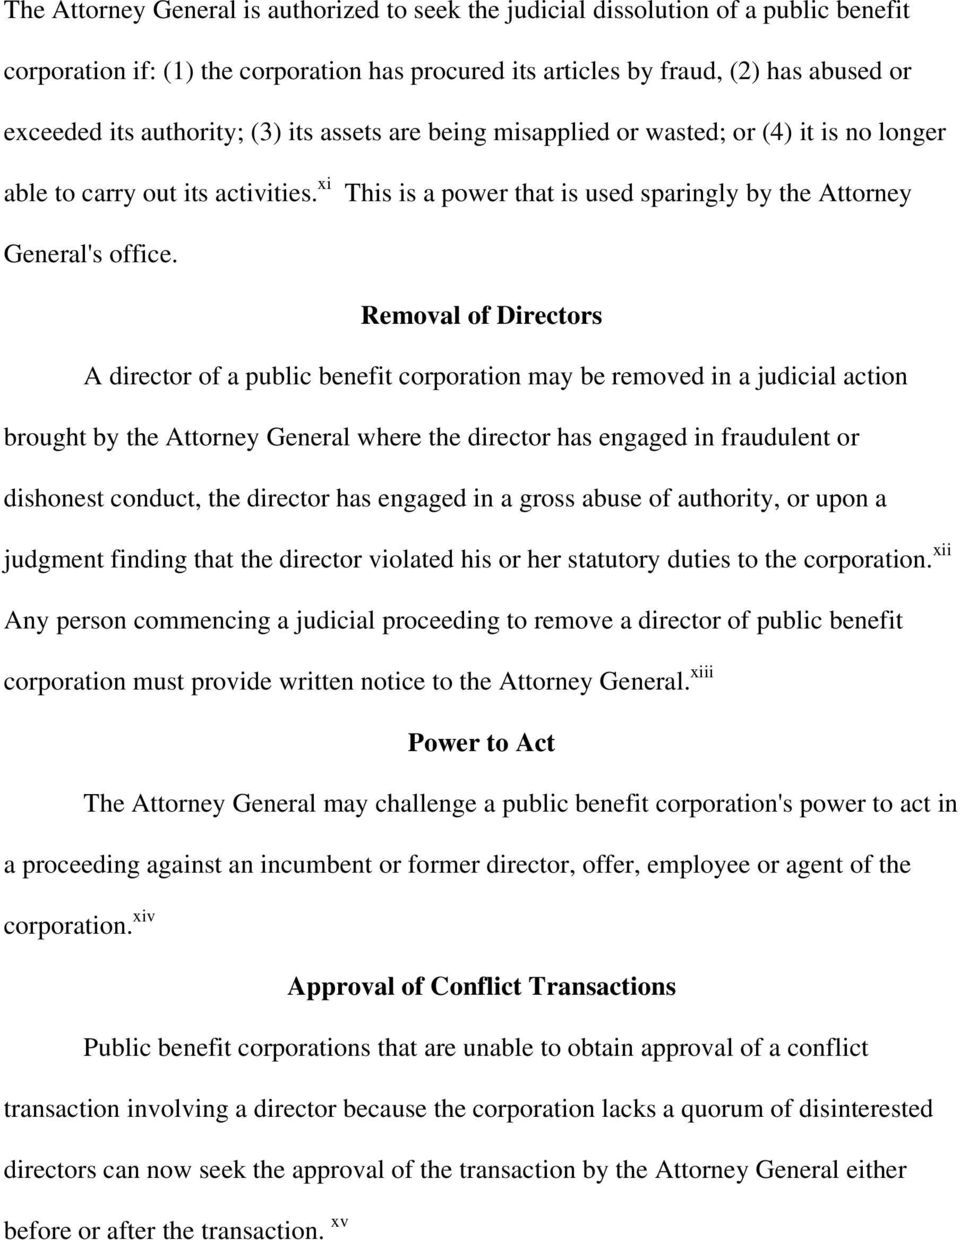 Removal of Directors A director of a public benefit corporation may be removed in a judicial action brought by the Attorney General where the director has engaged in fraudulent or dishonest conduct,